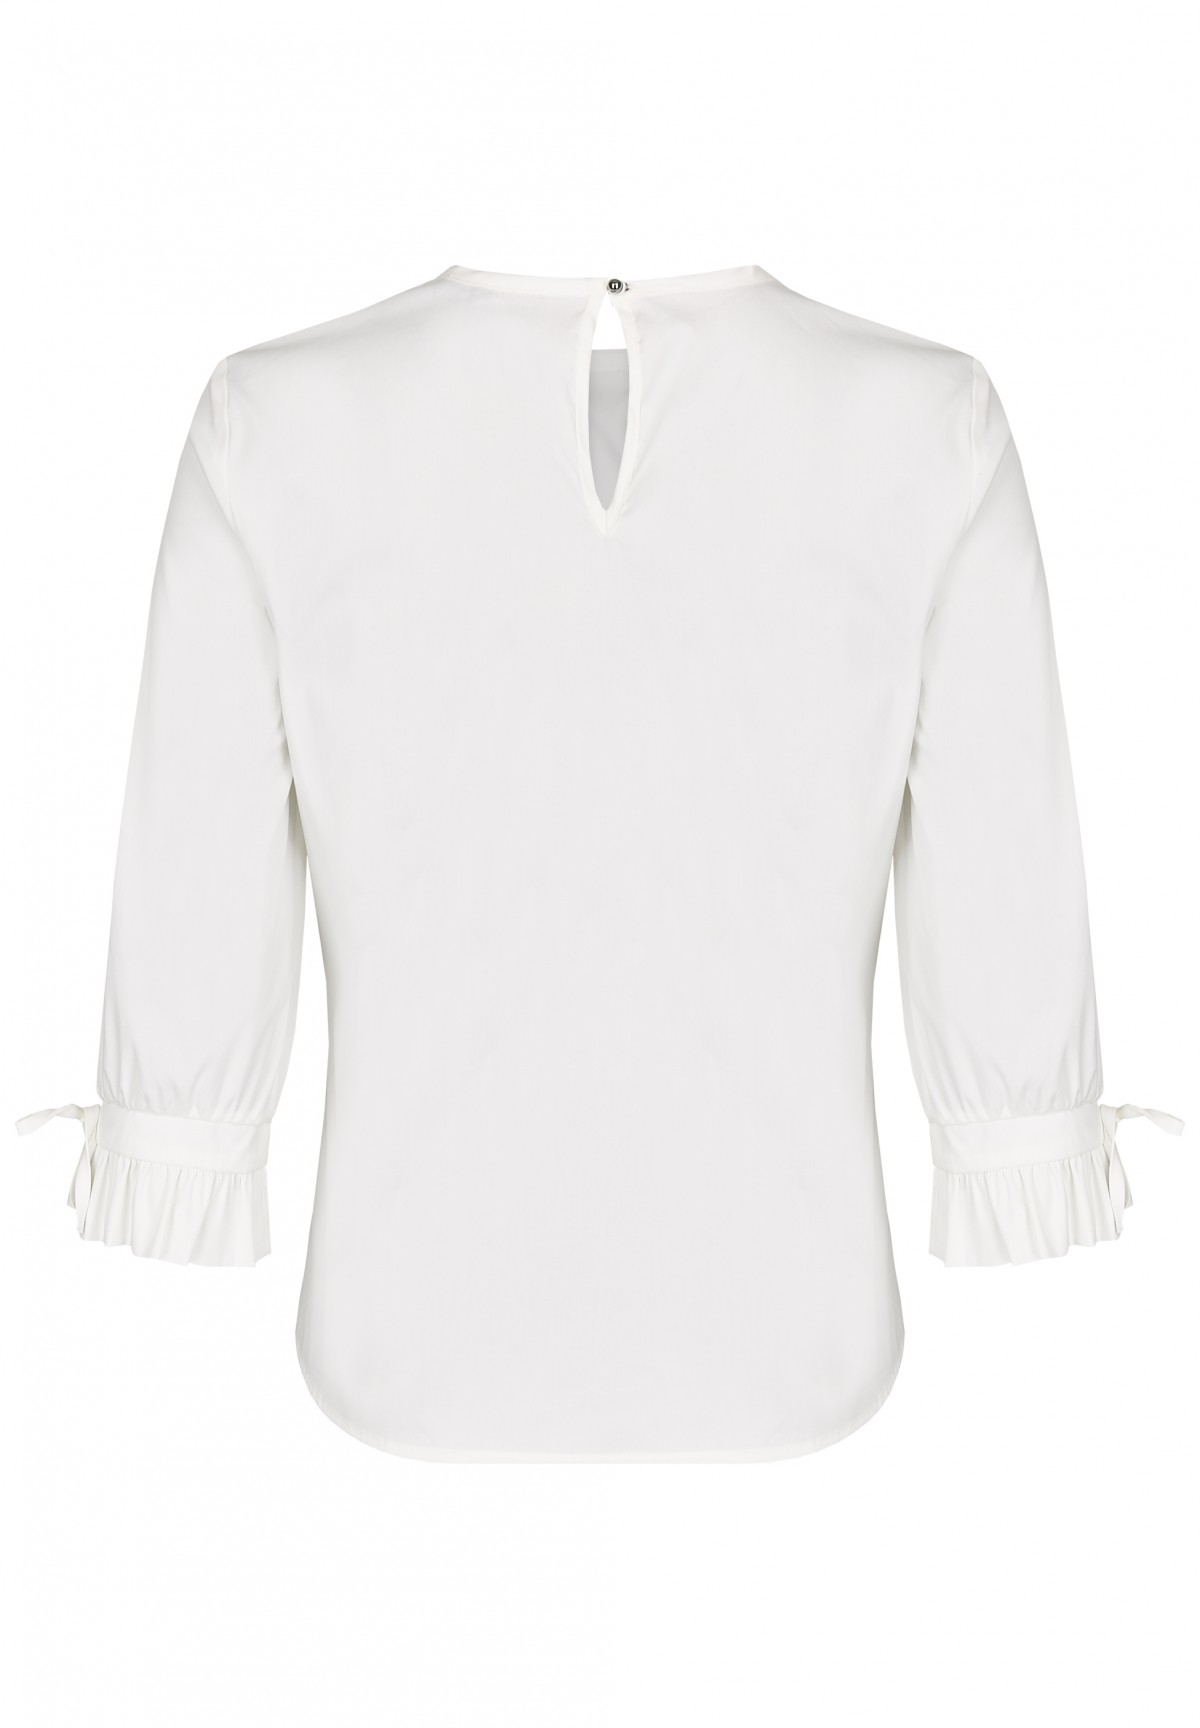 Modische Bluse / Blouse